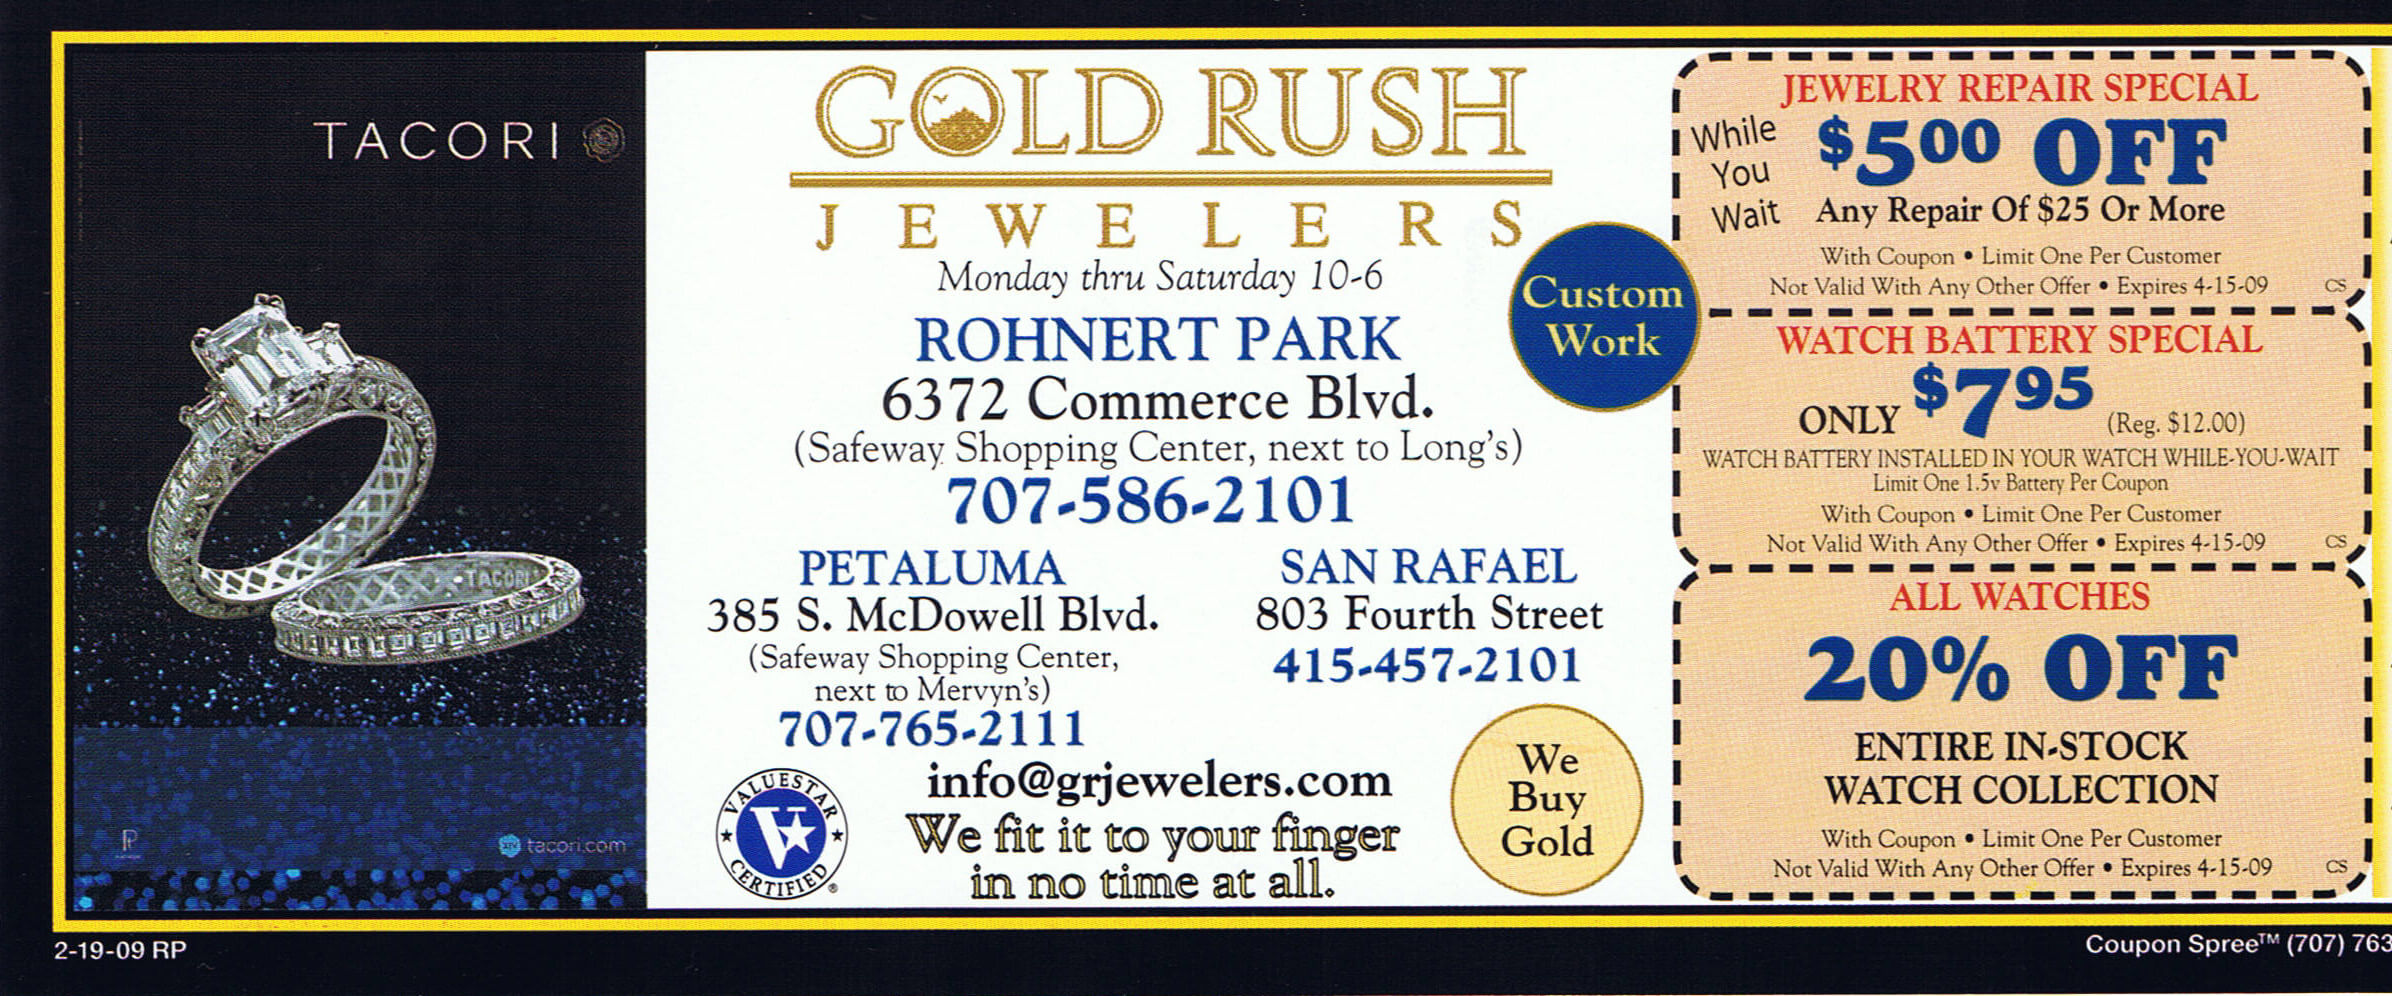 Weekly specials coupon gold rush jewelers for Jewelry repair san rafael